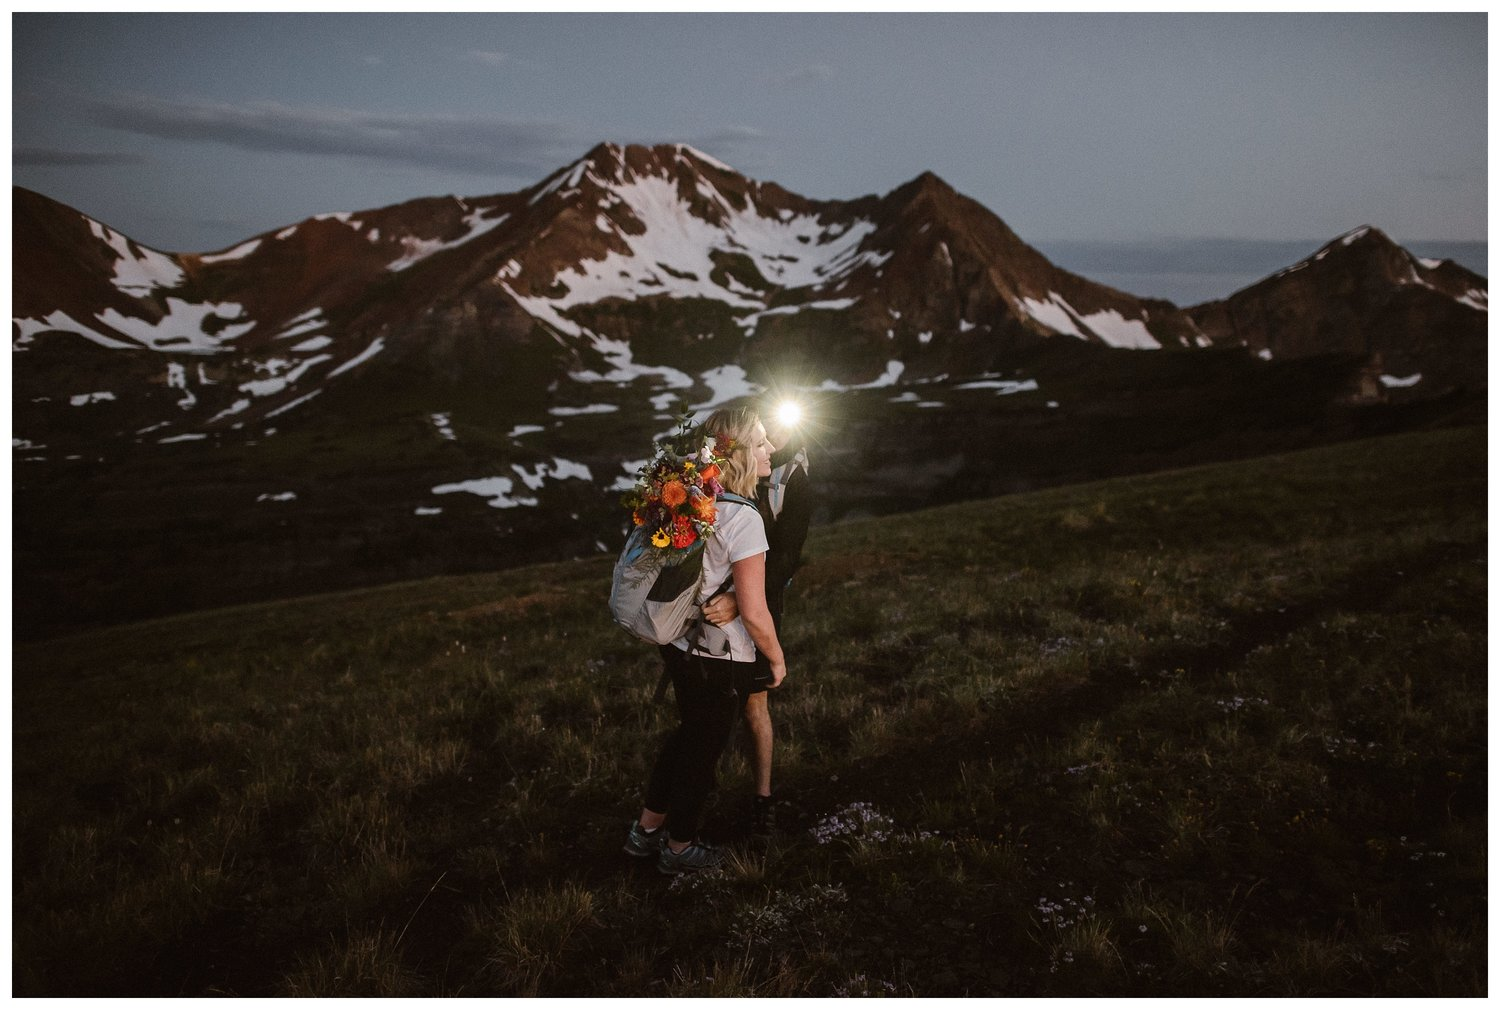 A couple wear headlamps as they hike up the mountains in the early morning.